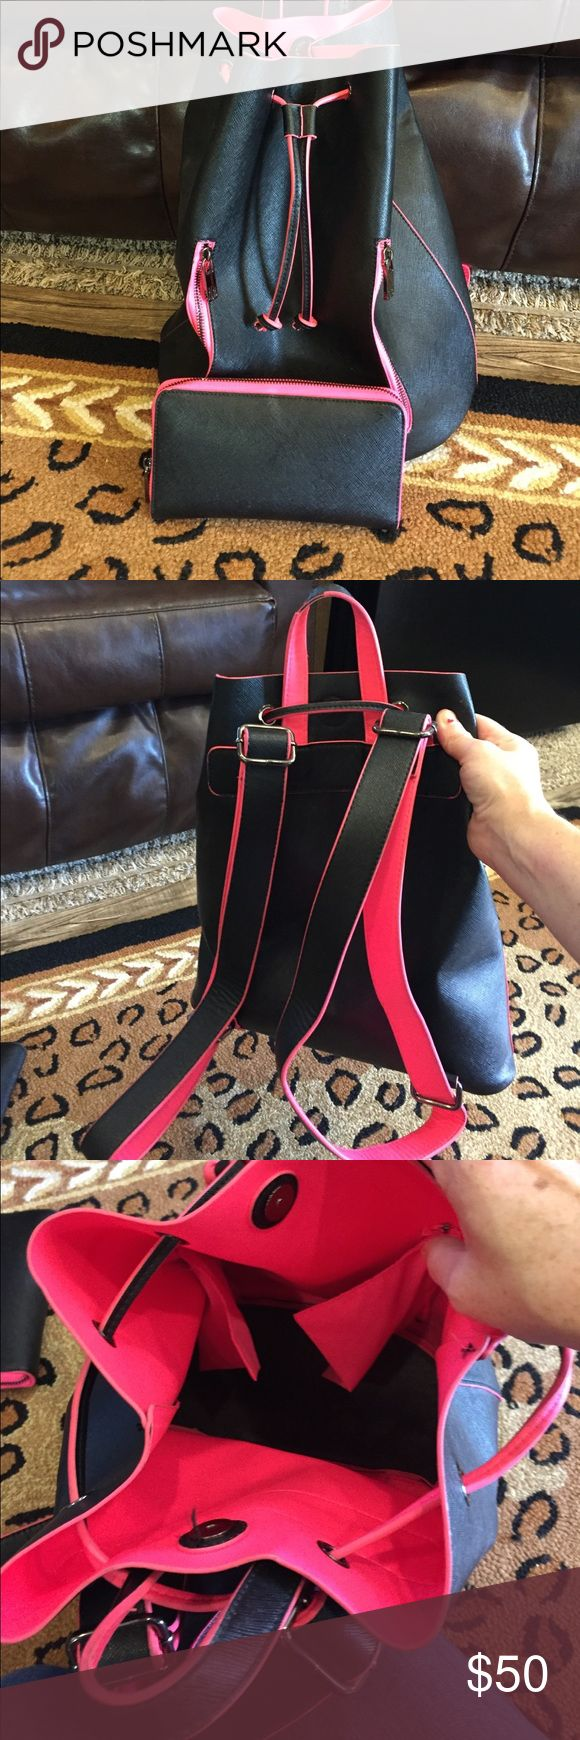 Neimun Marcus brand back pack and wallet Black and hot pink back pack and wallet Bags Backpacks